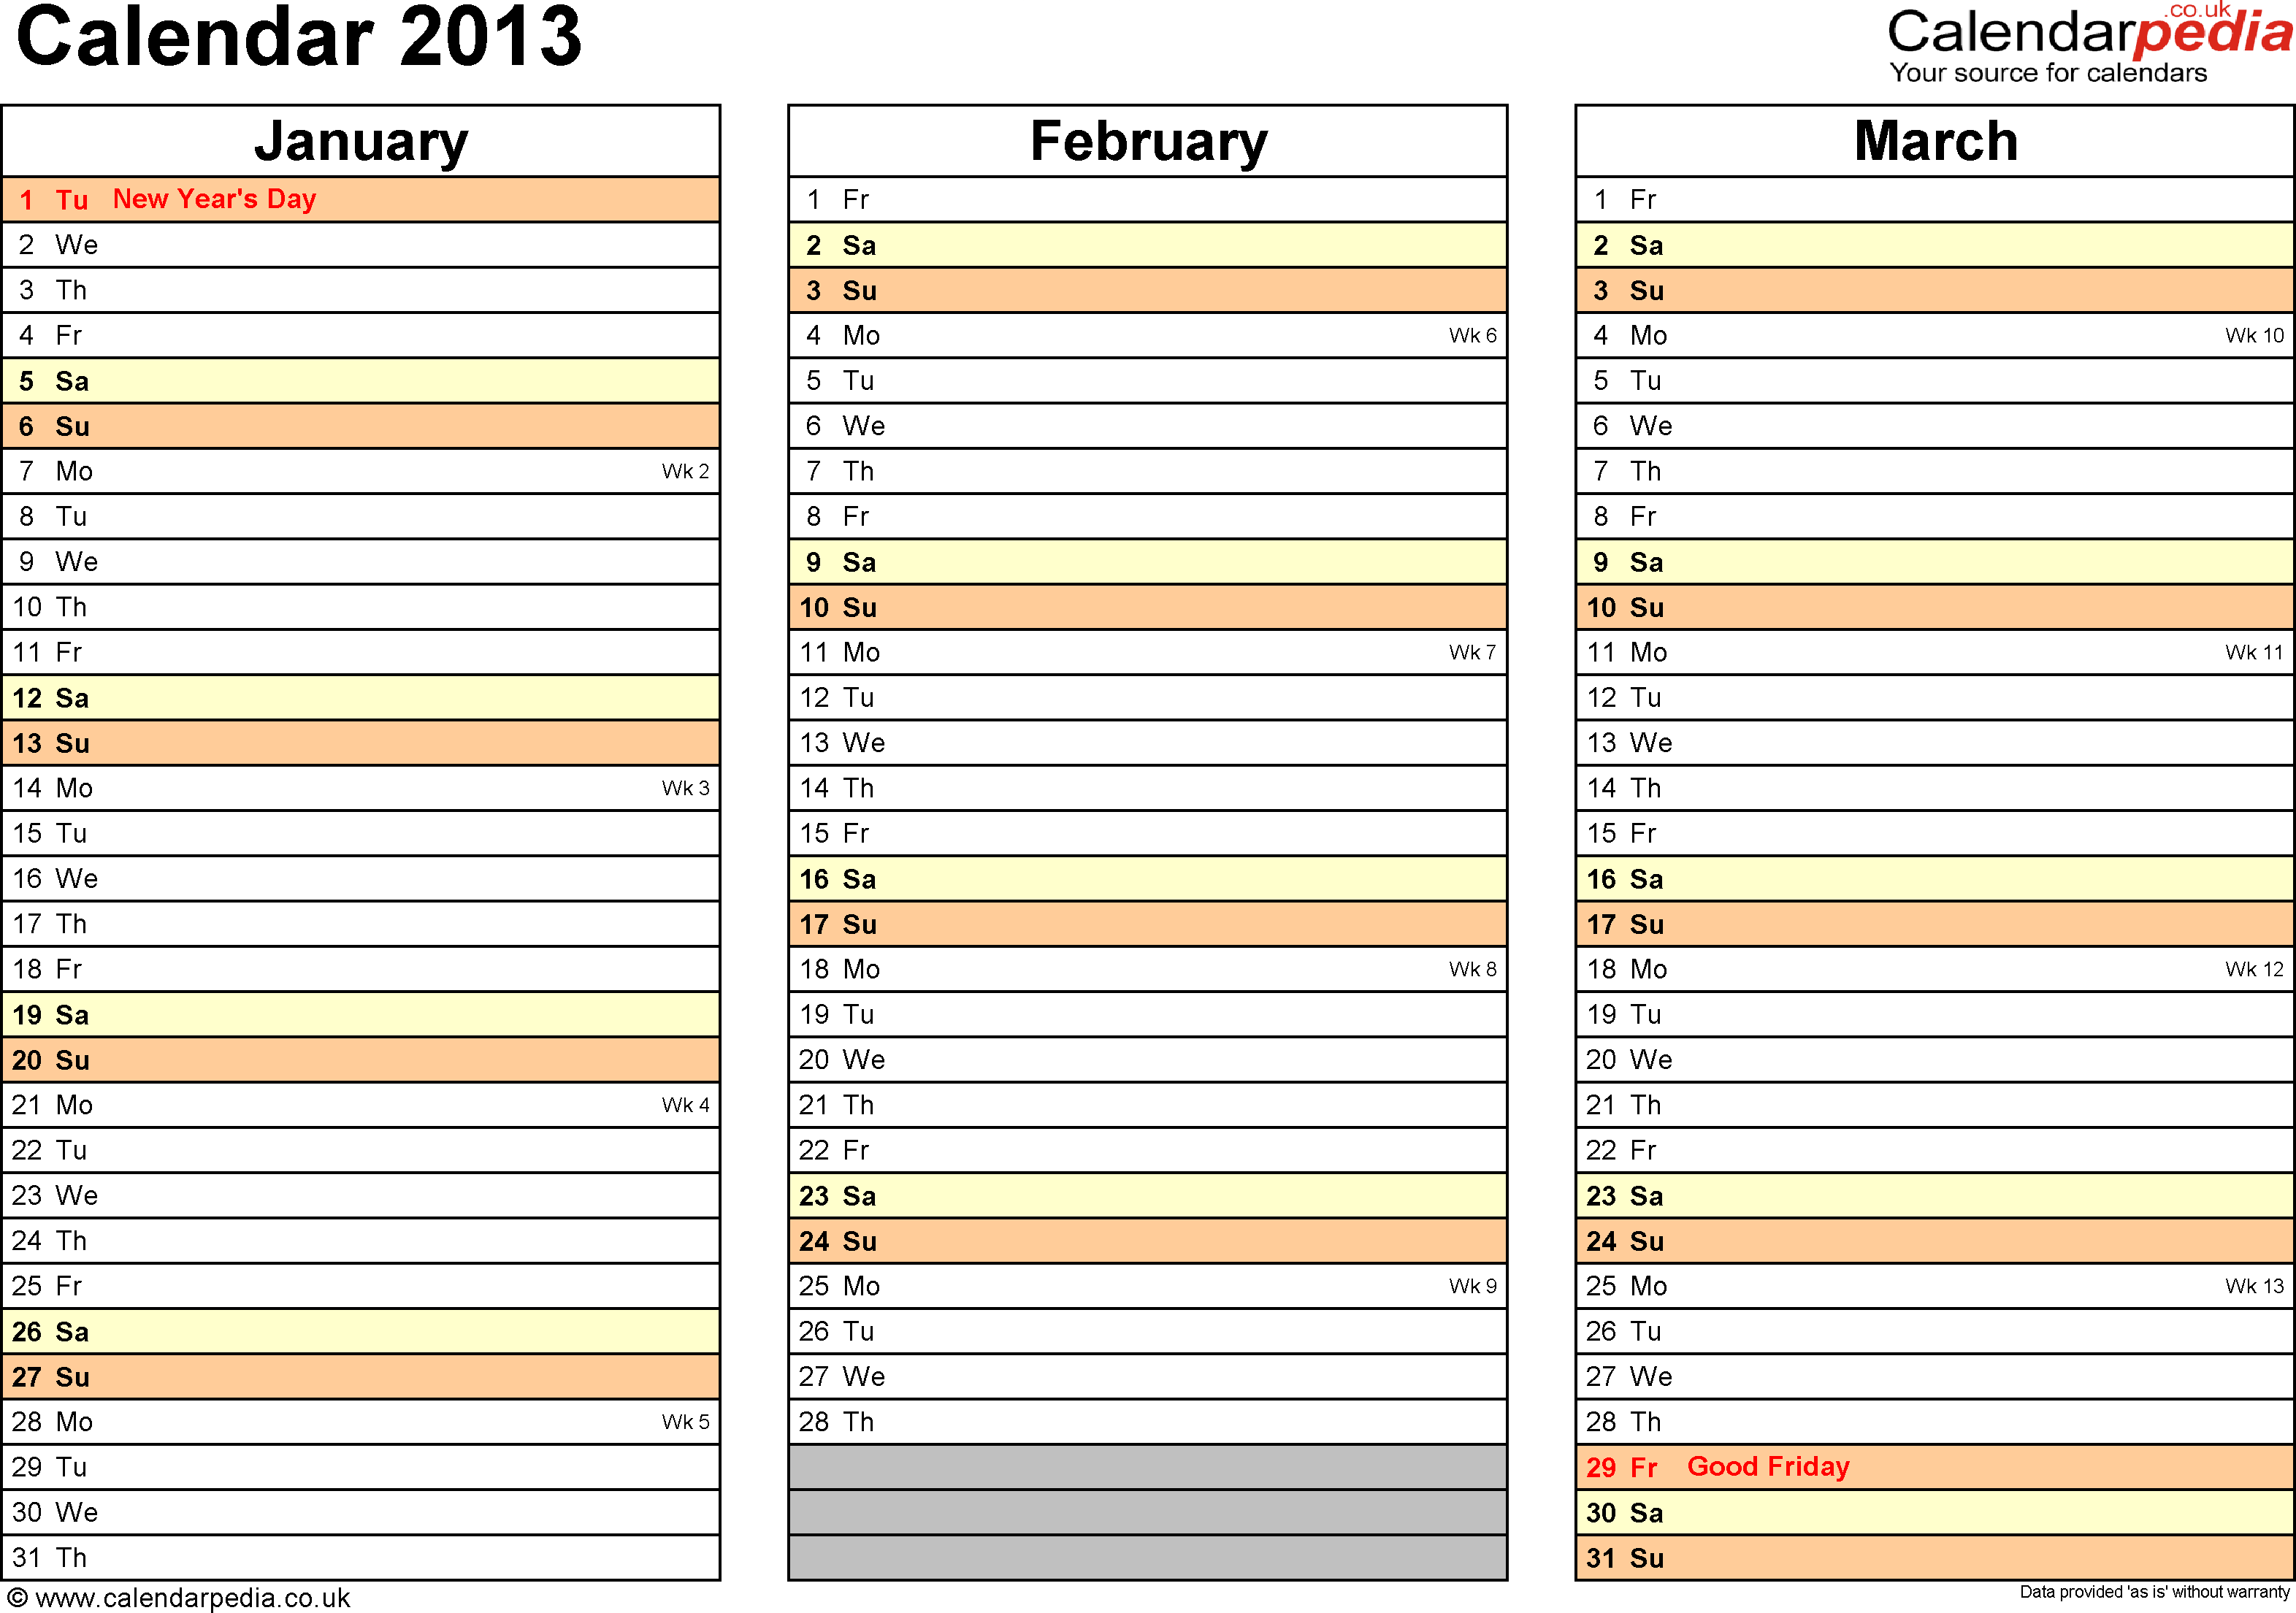 Template 6: Yearly calendar 2013 as Word template, landscape orientation, 4 pages, months horizontally, days vertically, with UK bank holidays and week numbers